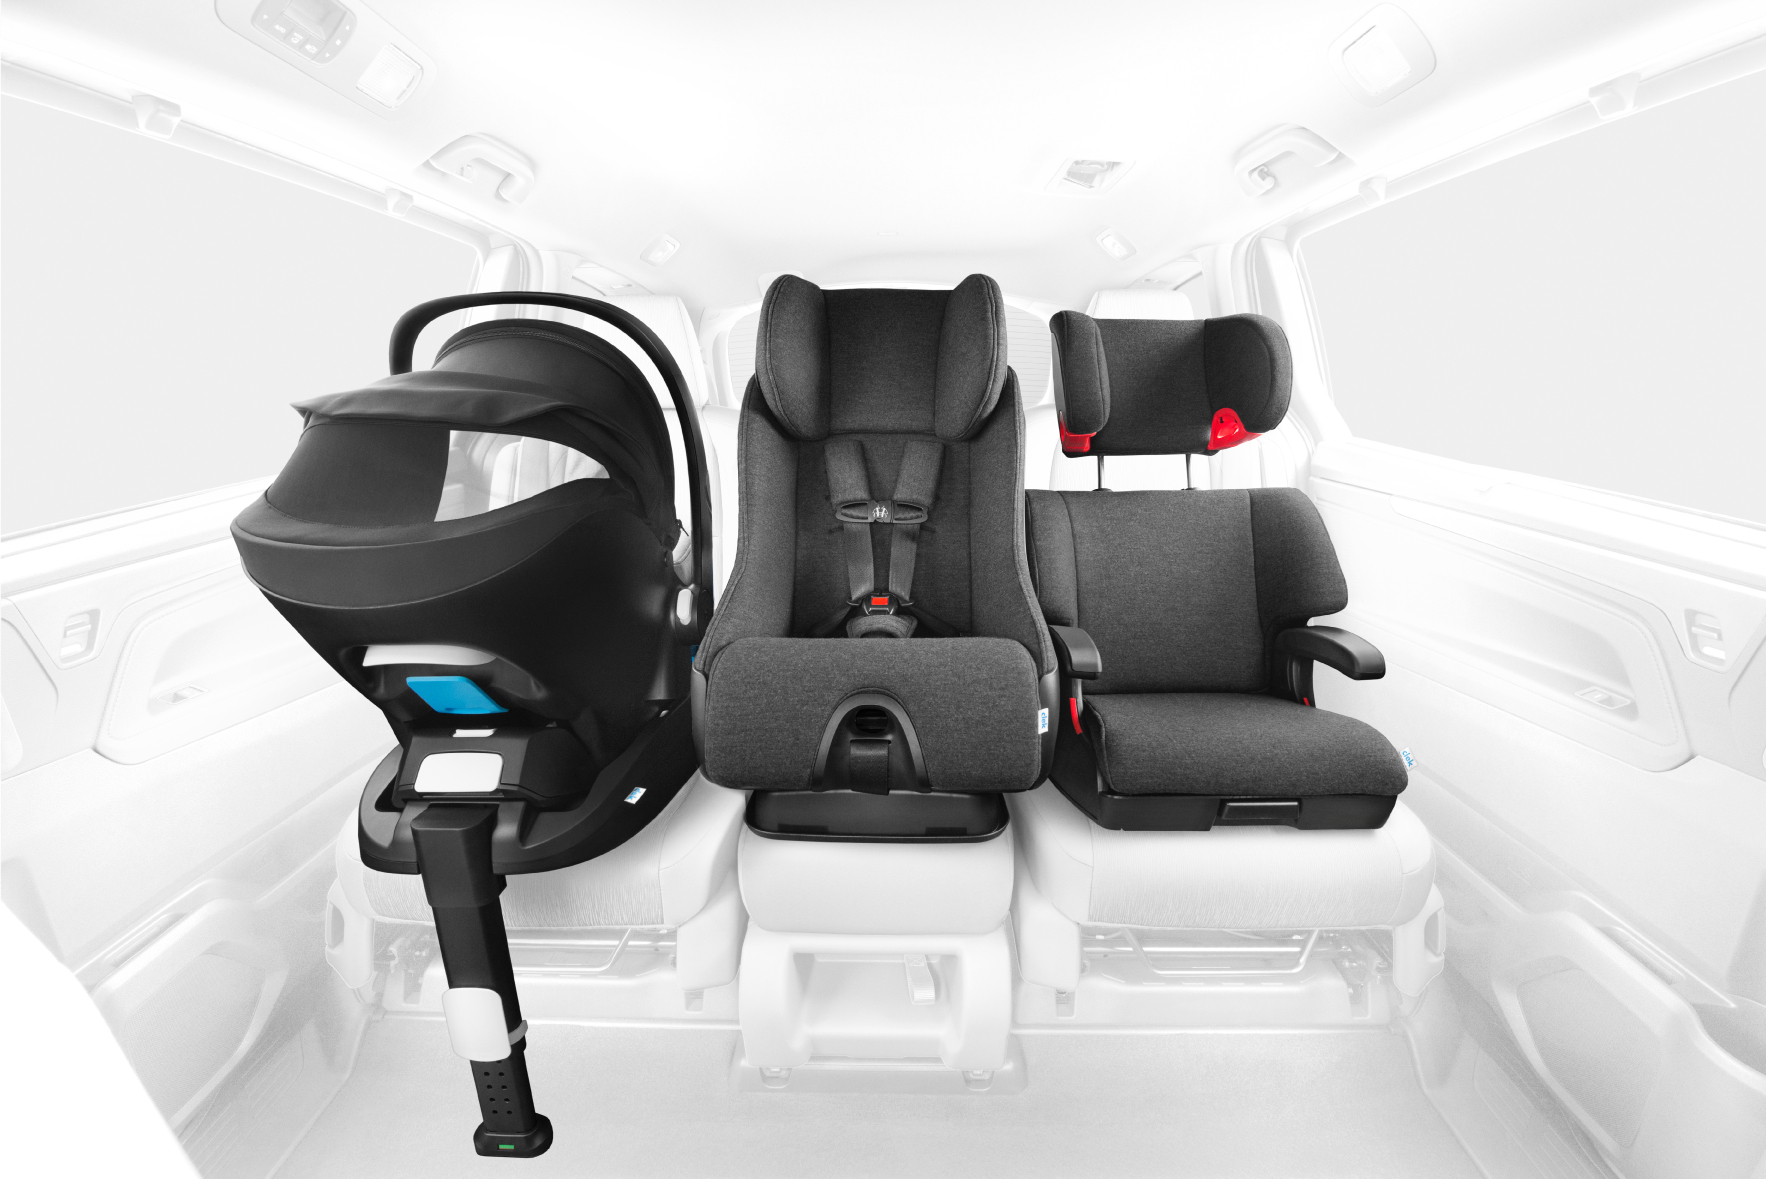 Rendering showing 3 types of car seats: rear-facing infant seat, convertible car seat in forward-facing position, and booster seat. Photo courtesy of Clek.